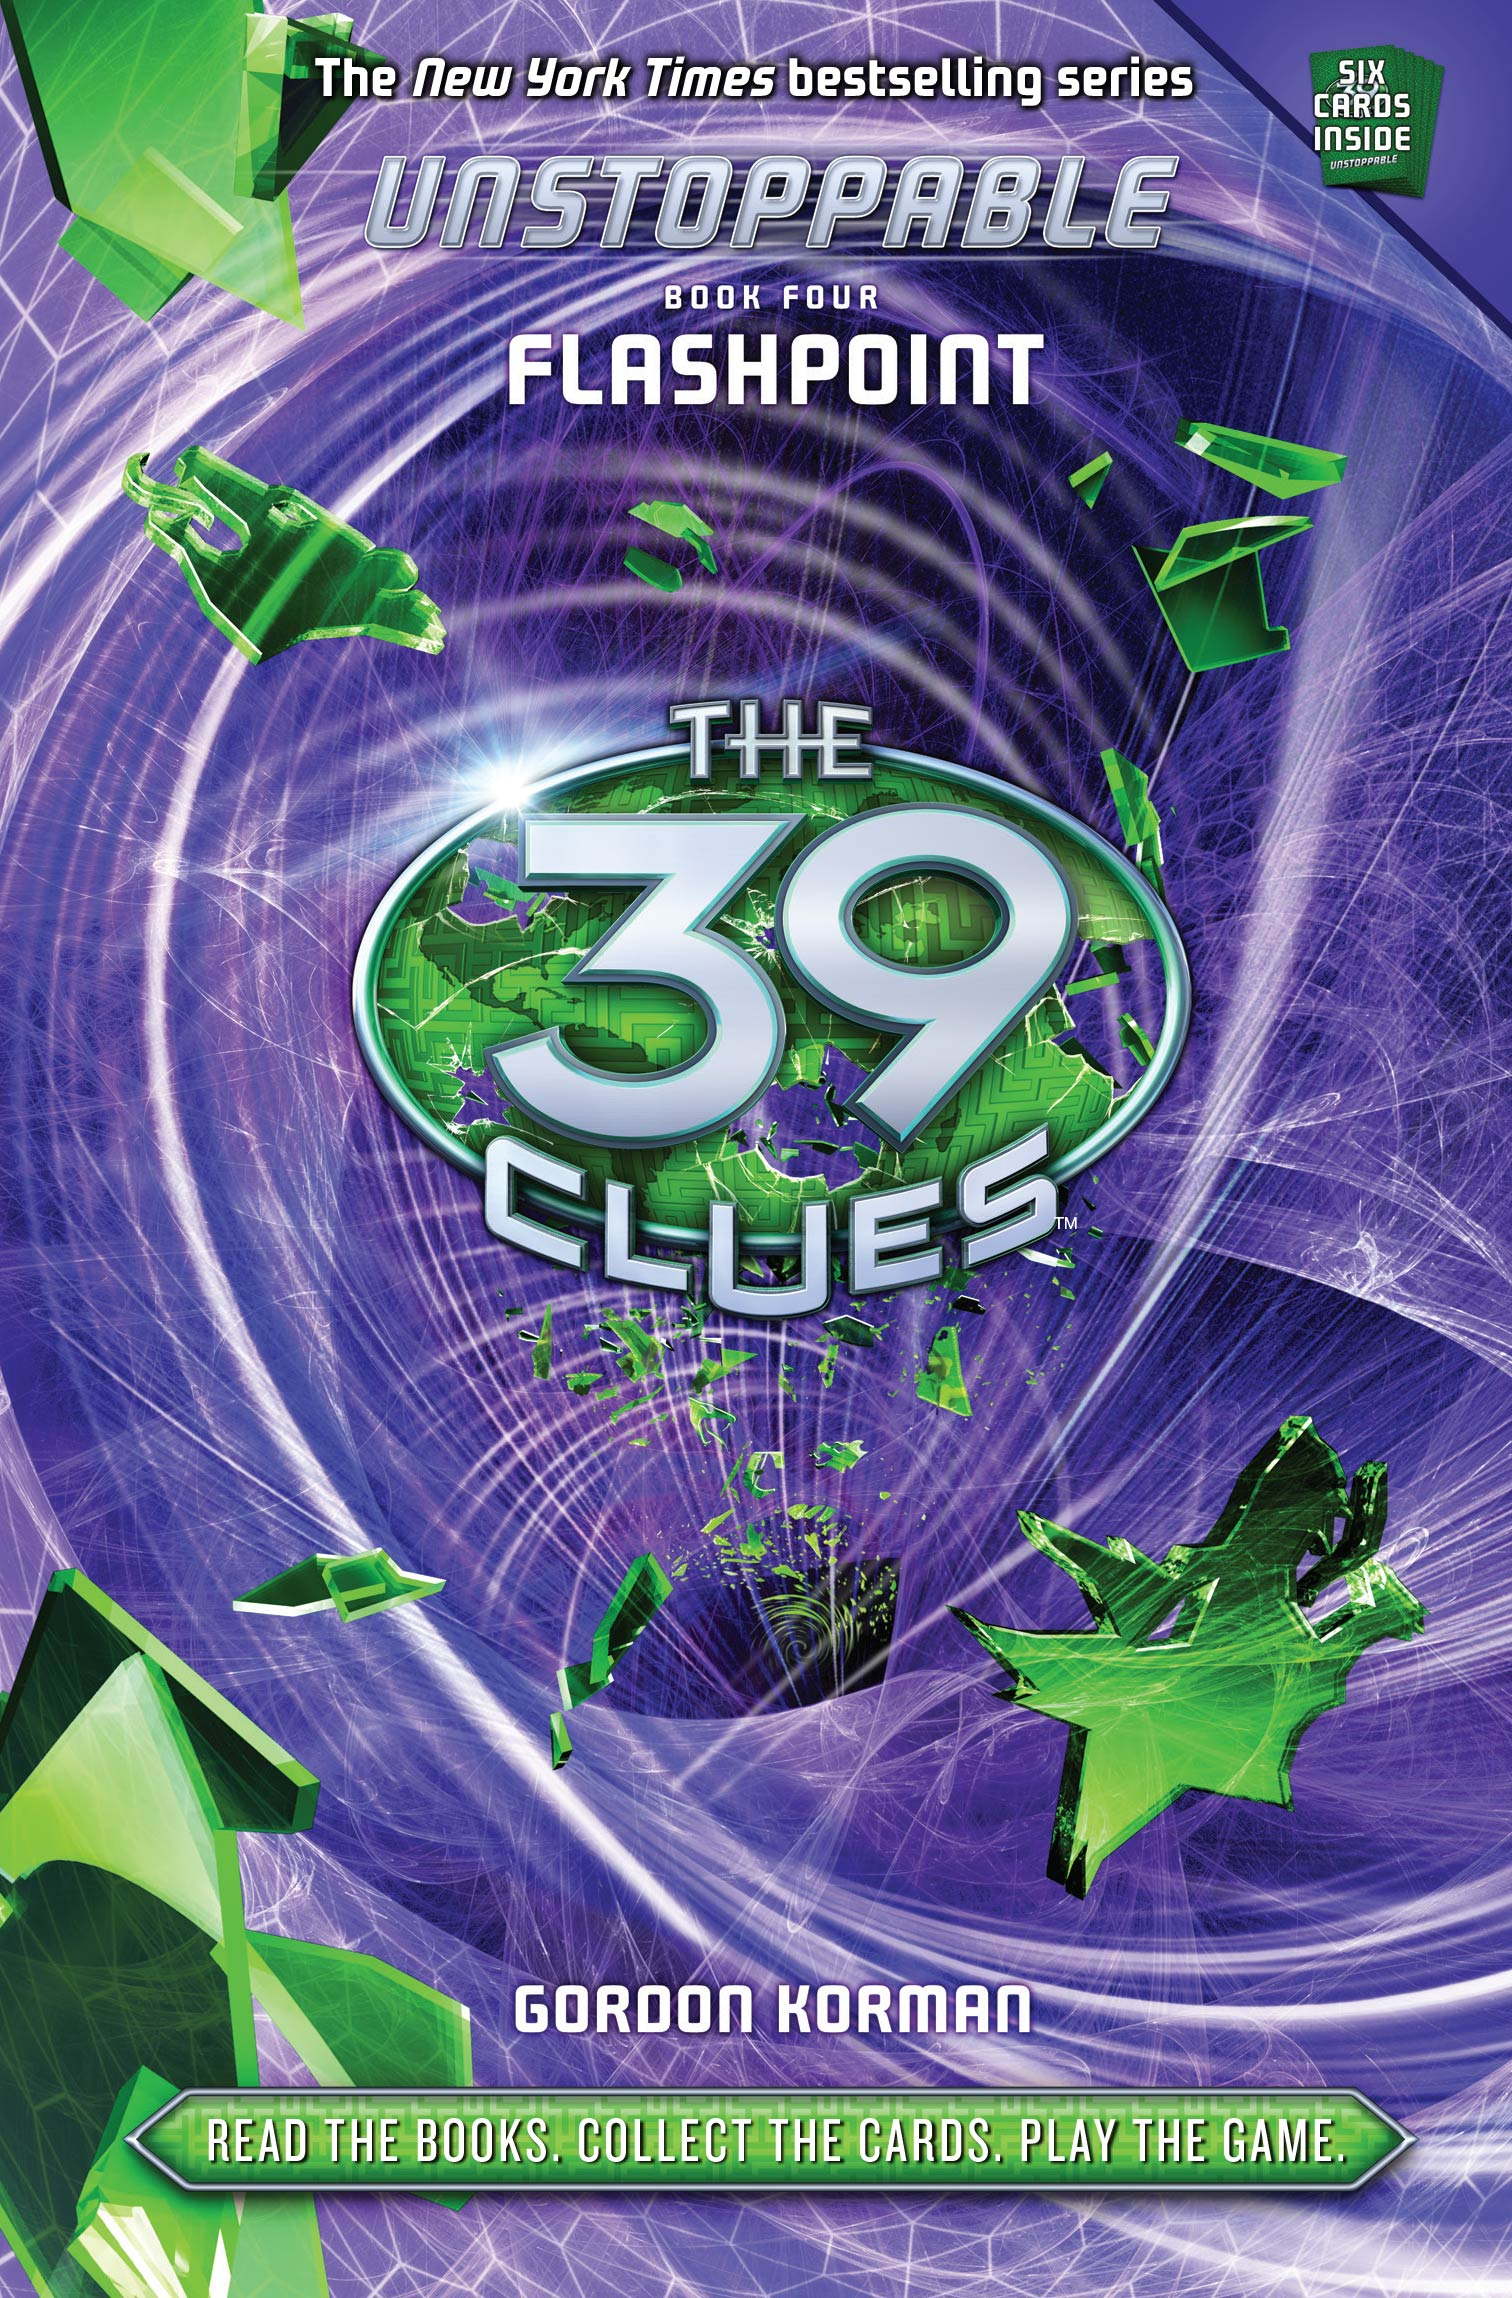 The Emperors Code (The 39 Clues, Book 8) - Librar